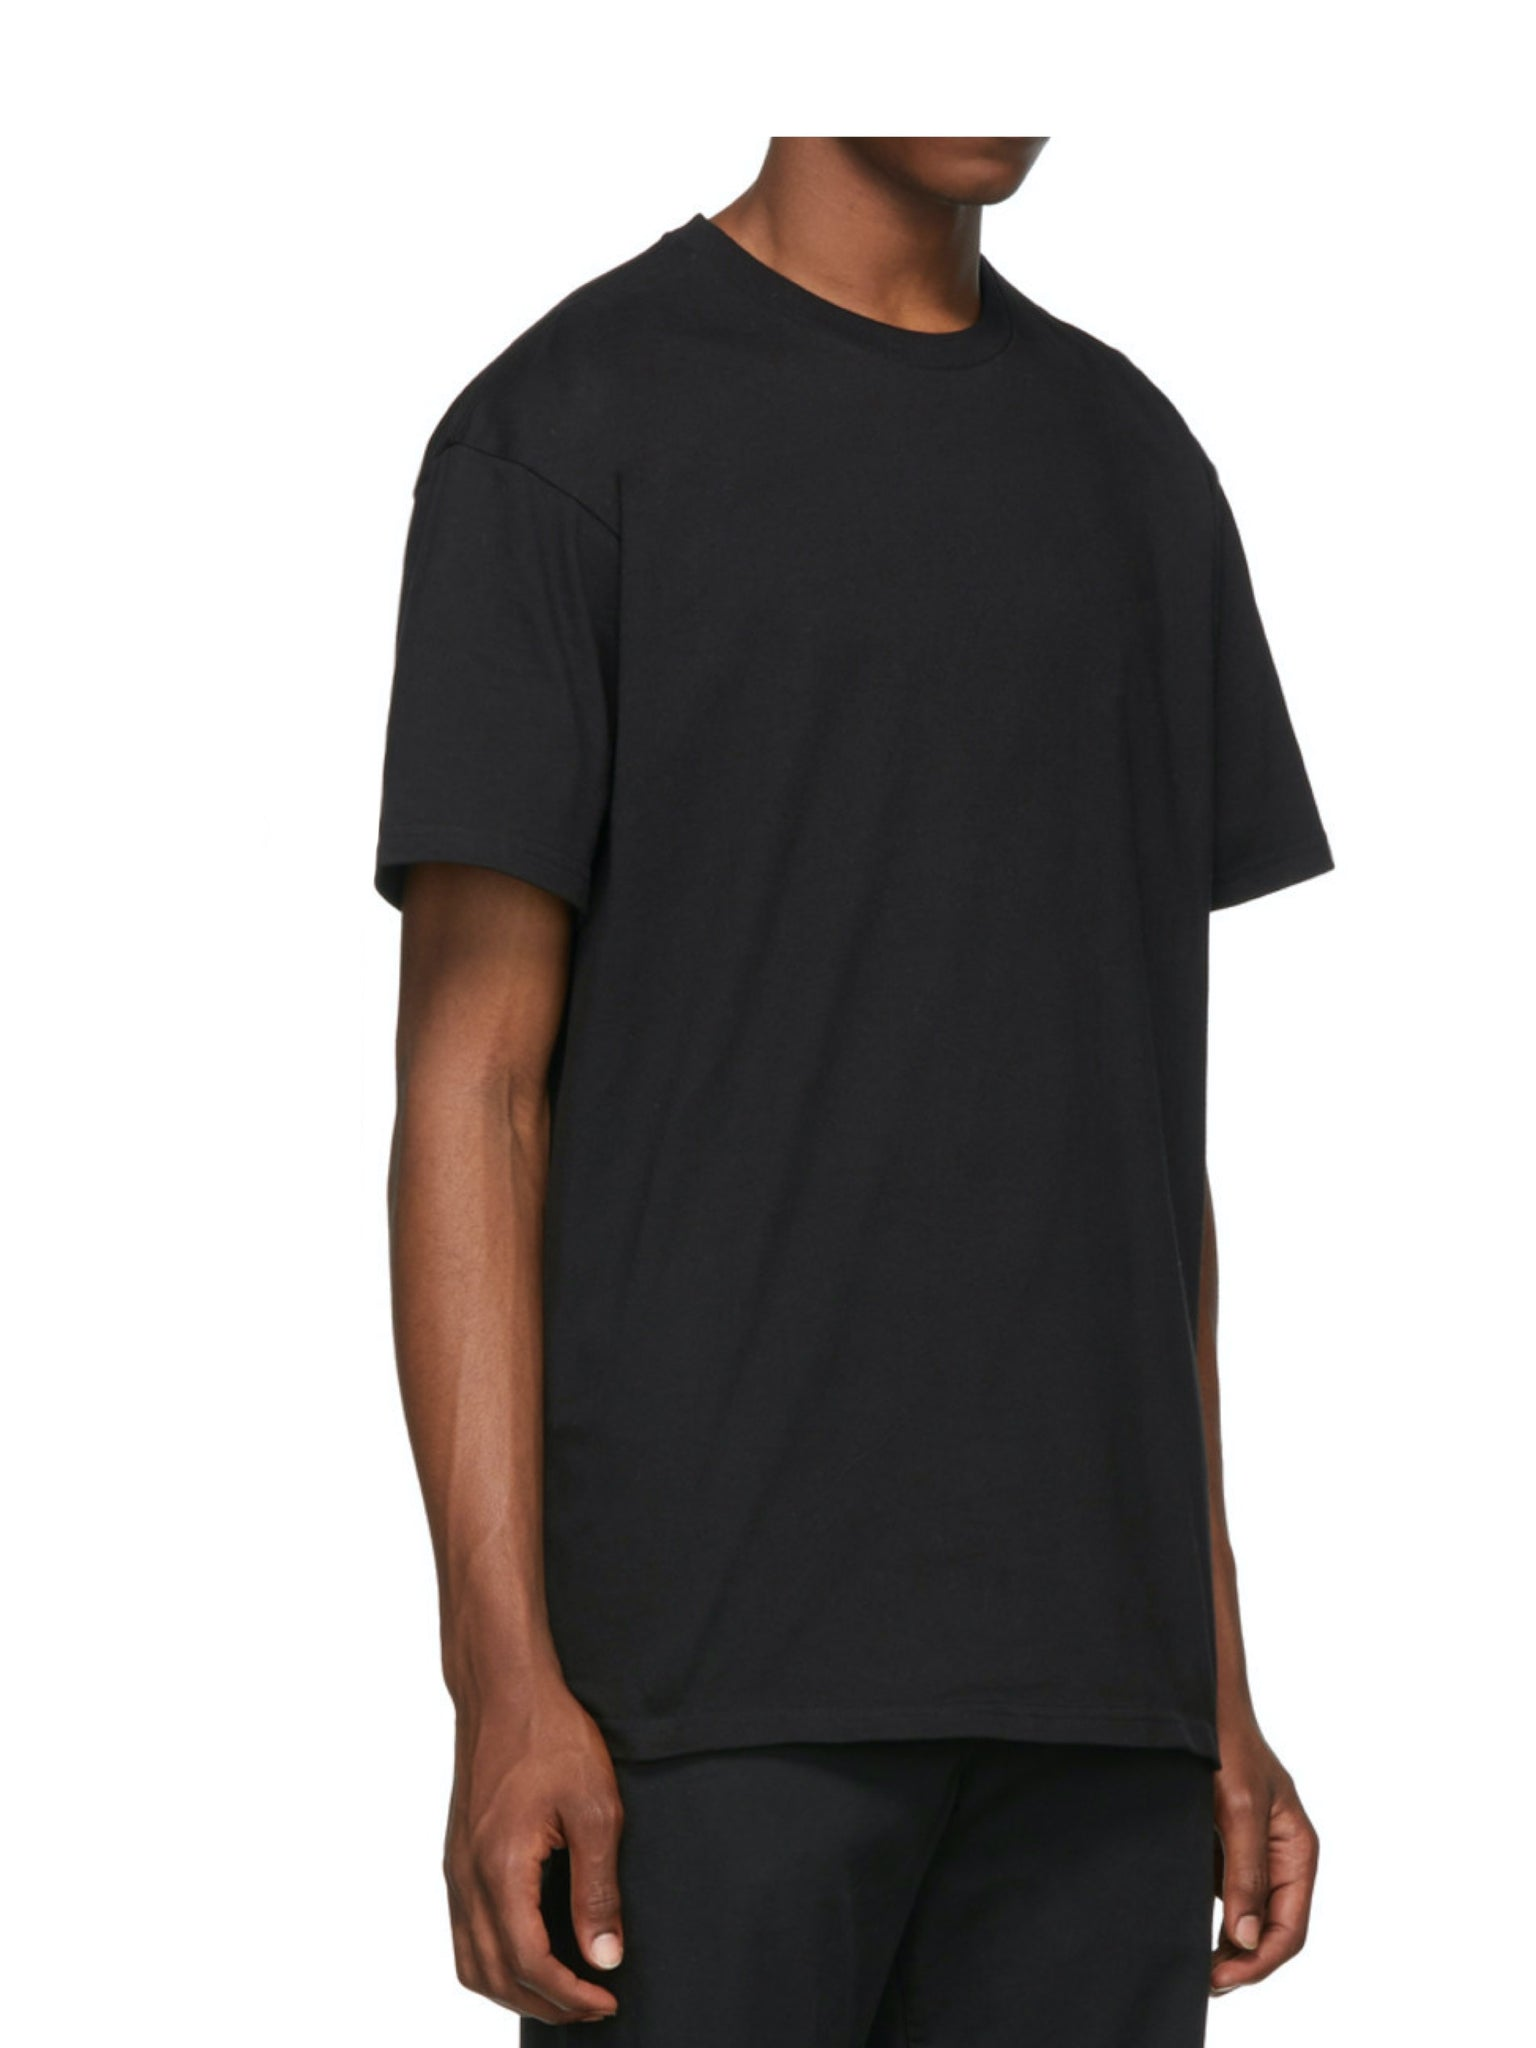 VNTCH BASIC T-SHIRT BLACK